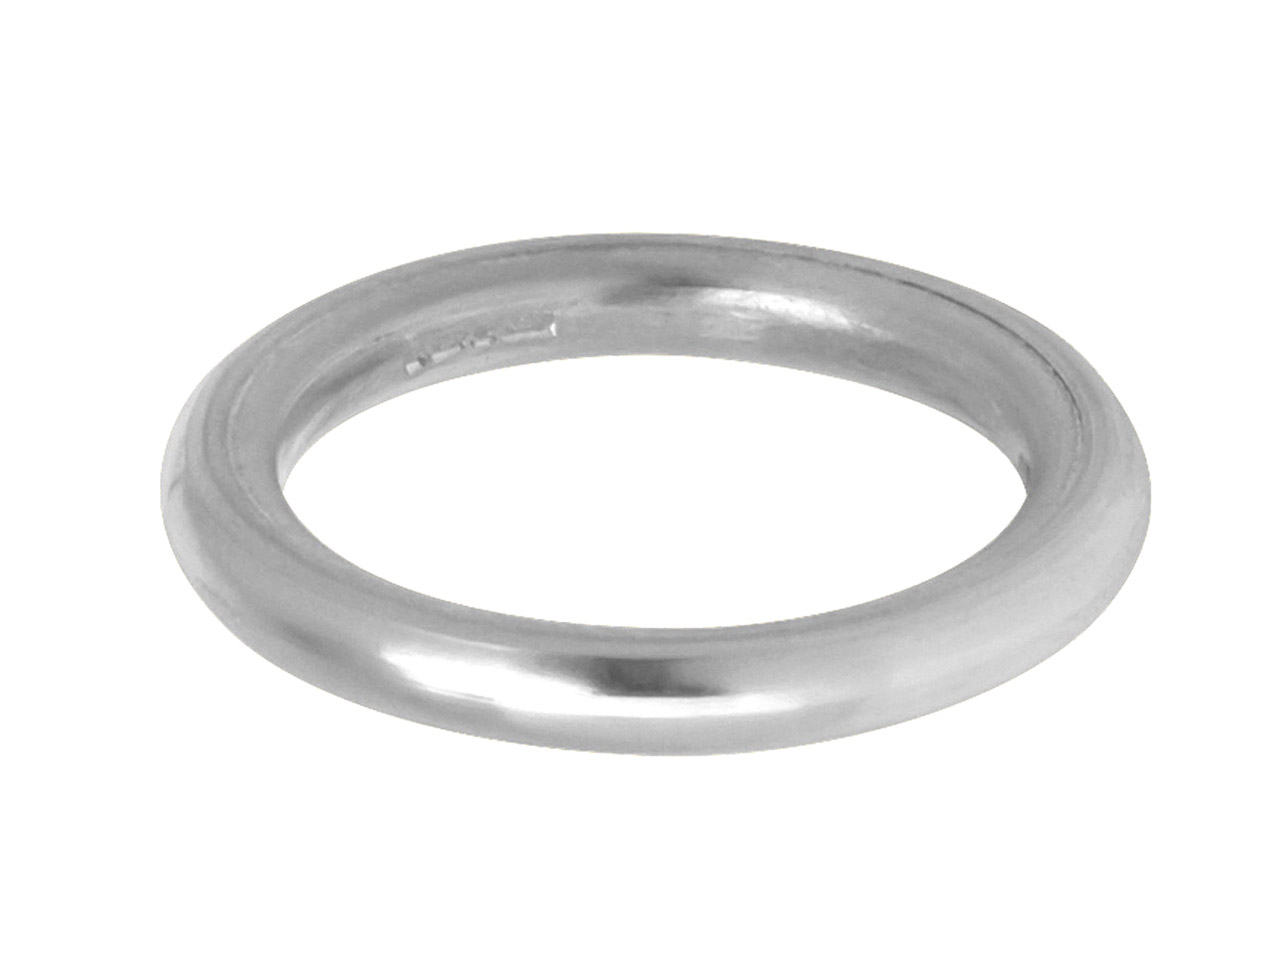 Silver Halo Wedding Ring 3.0mm K    4.4gms Heavy Weight Hallmarked Wall Thickness 3.00mm